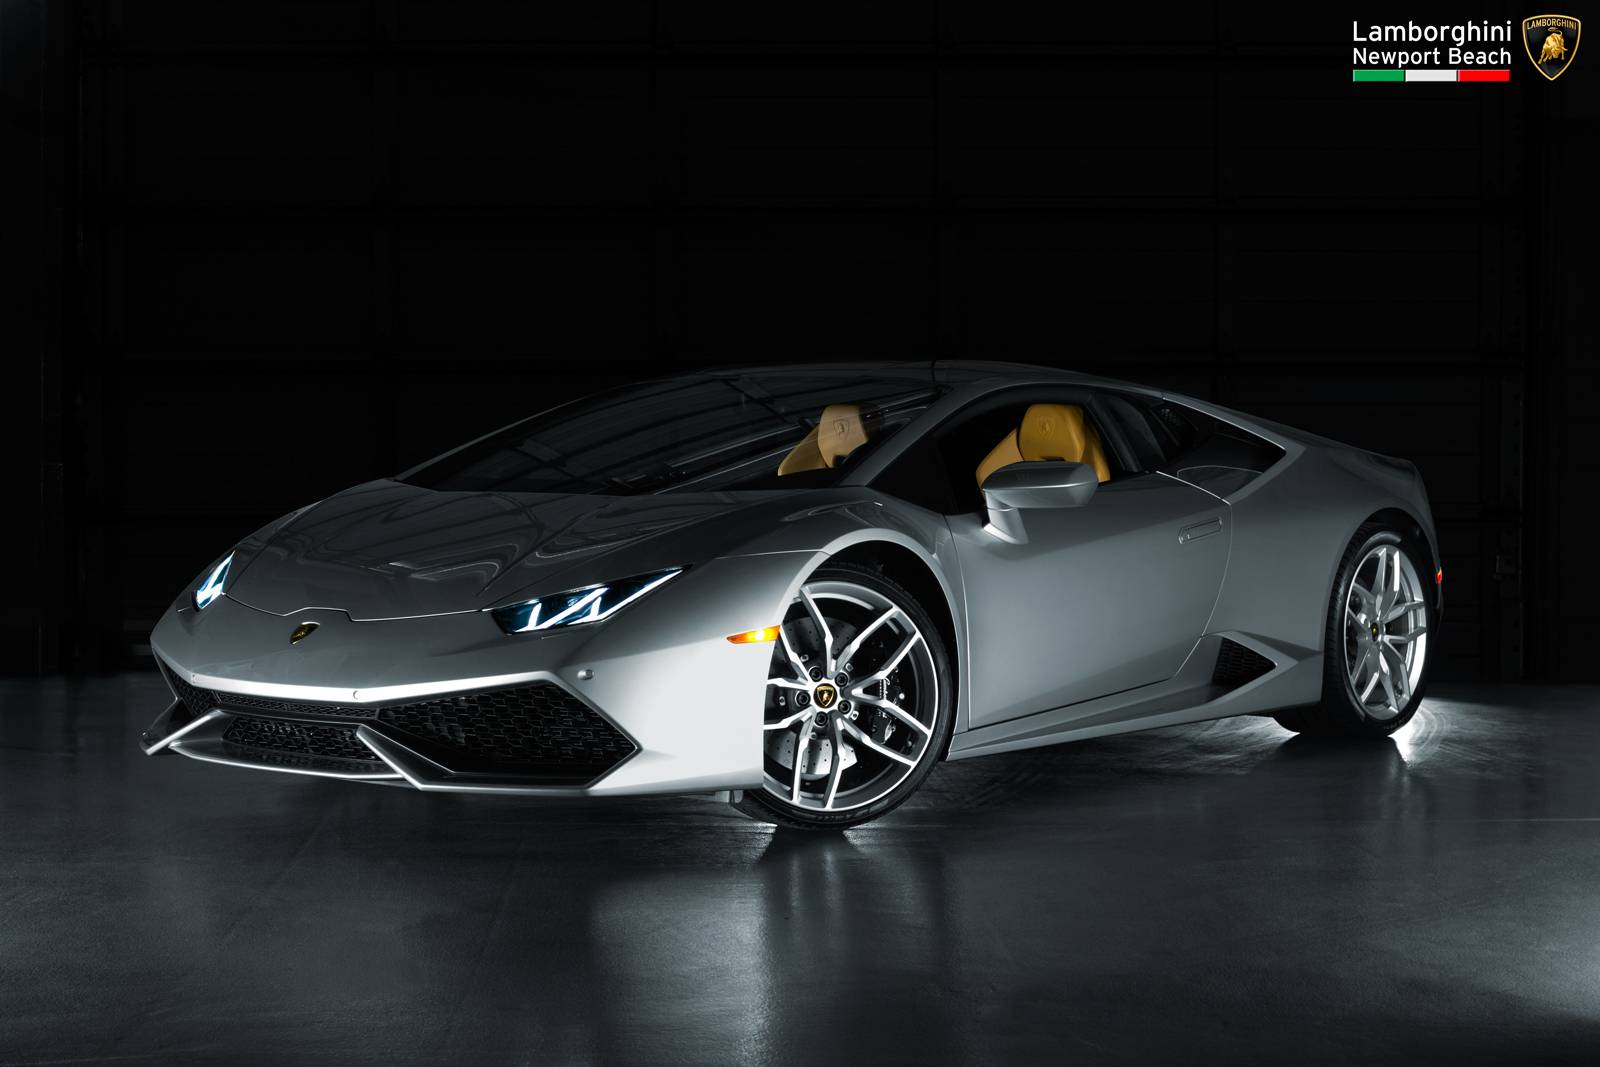 complete lamborghini huracan at newport beach gallery gtspirit. Black Bedroom Furniture Sets. Home Design Ideas